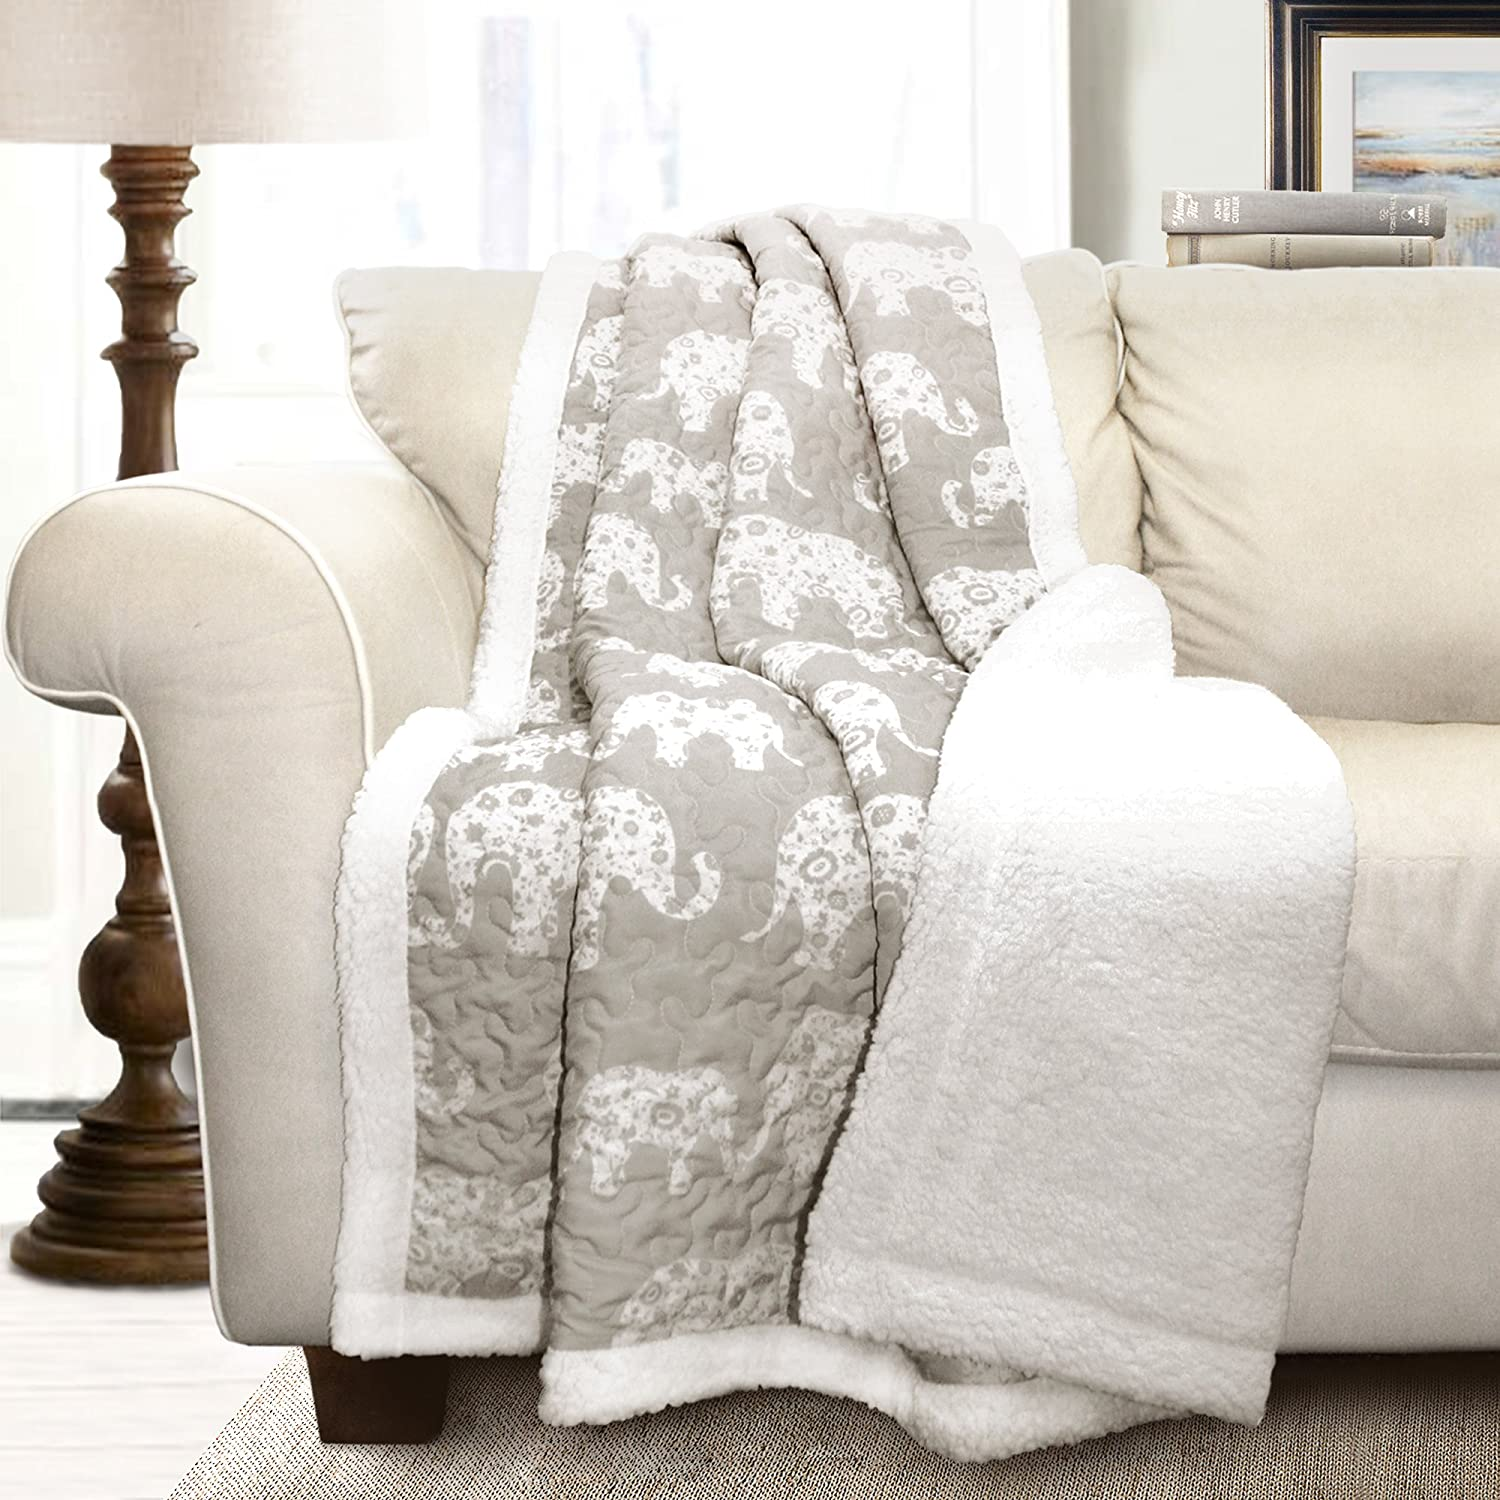 elephant-gifts-blanket